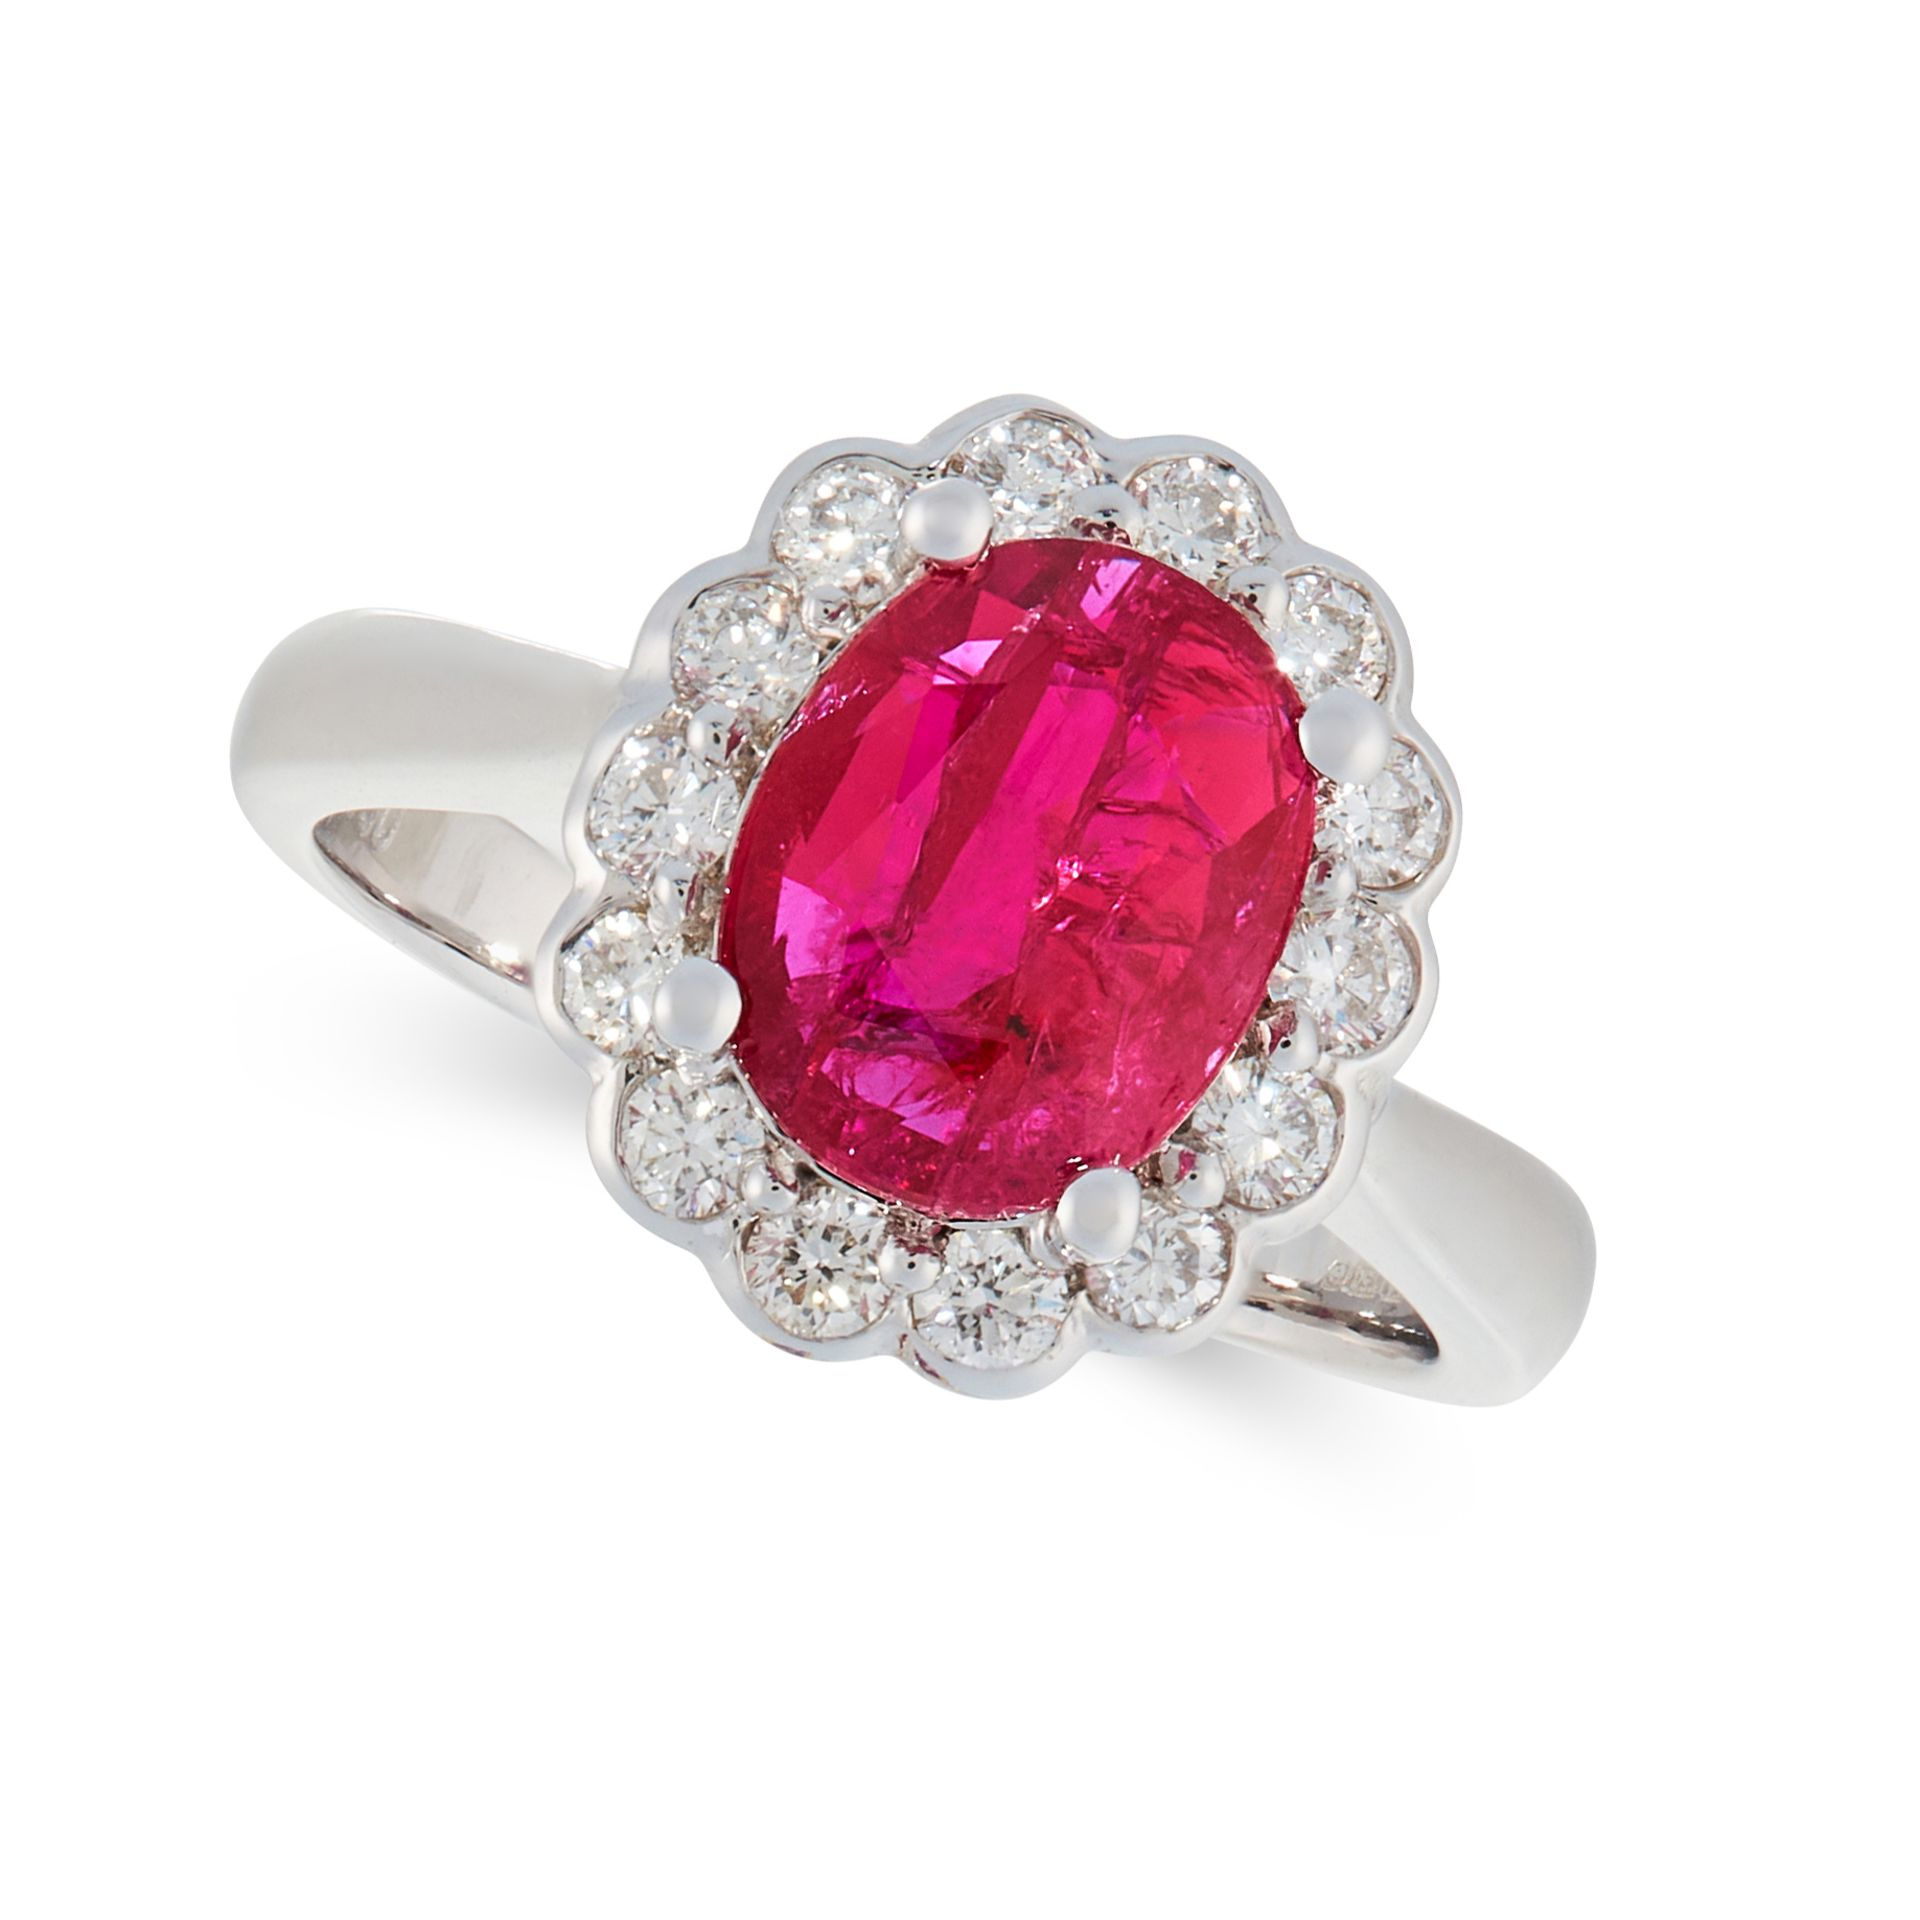 AN UNHEATED RUBY AND DIAMOND CLUSTER RING in 18ct white gold, set with an oval cut ruby of 2.17